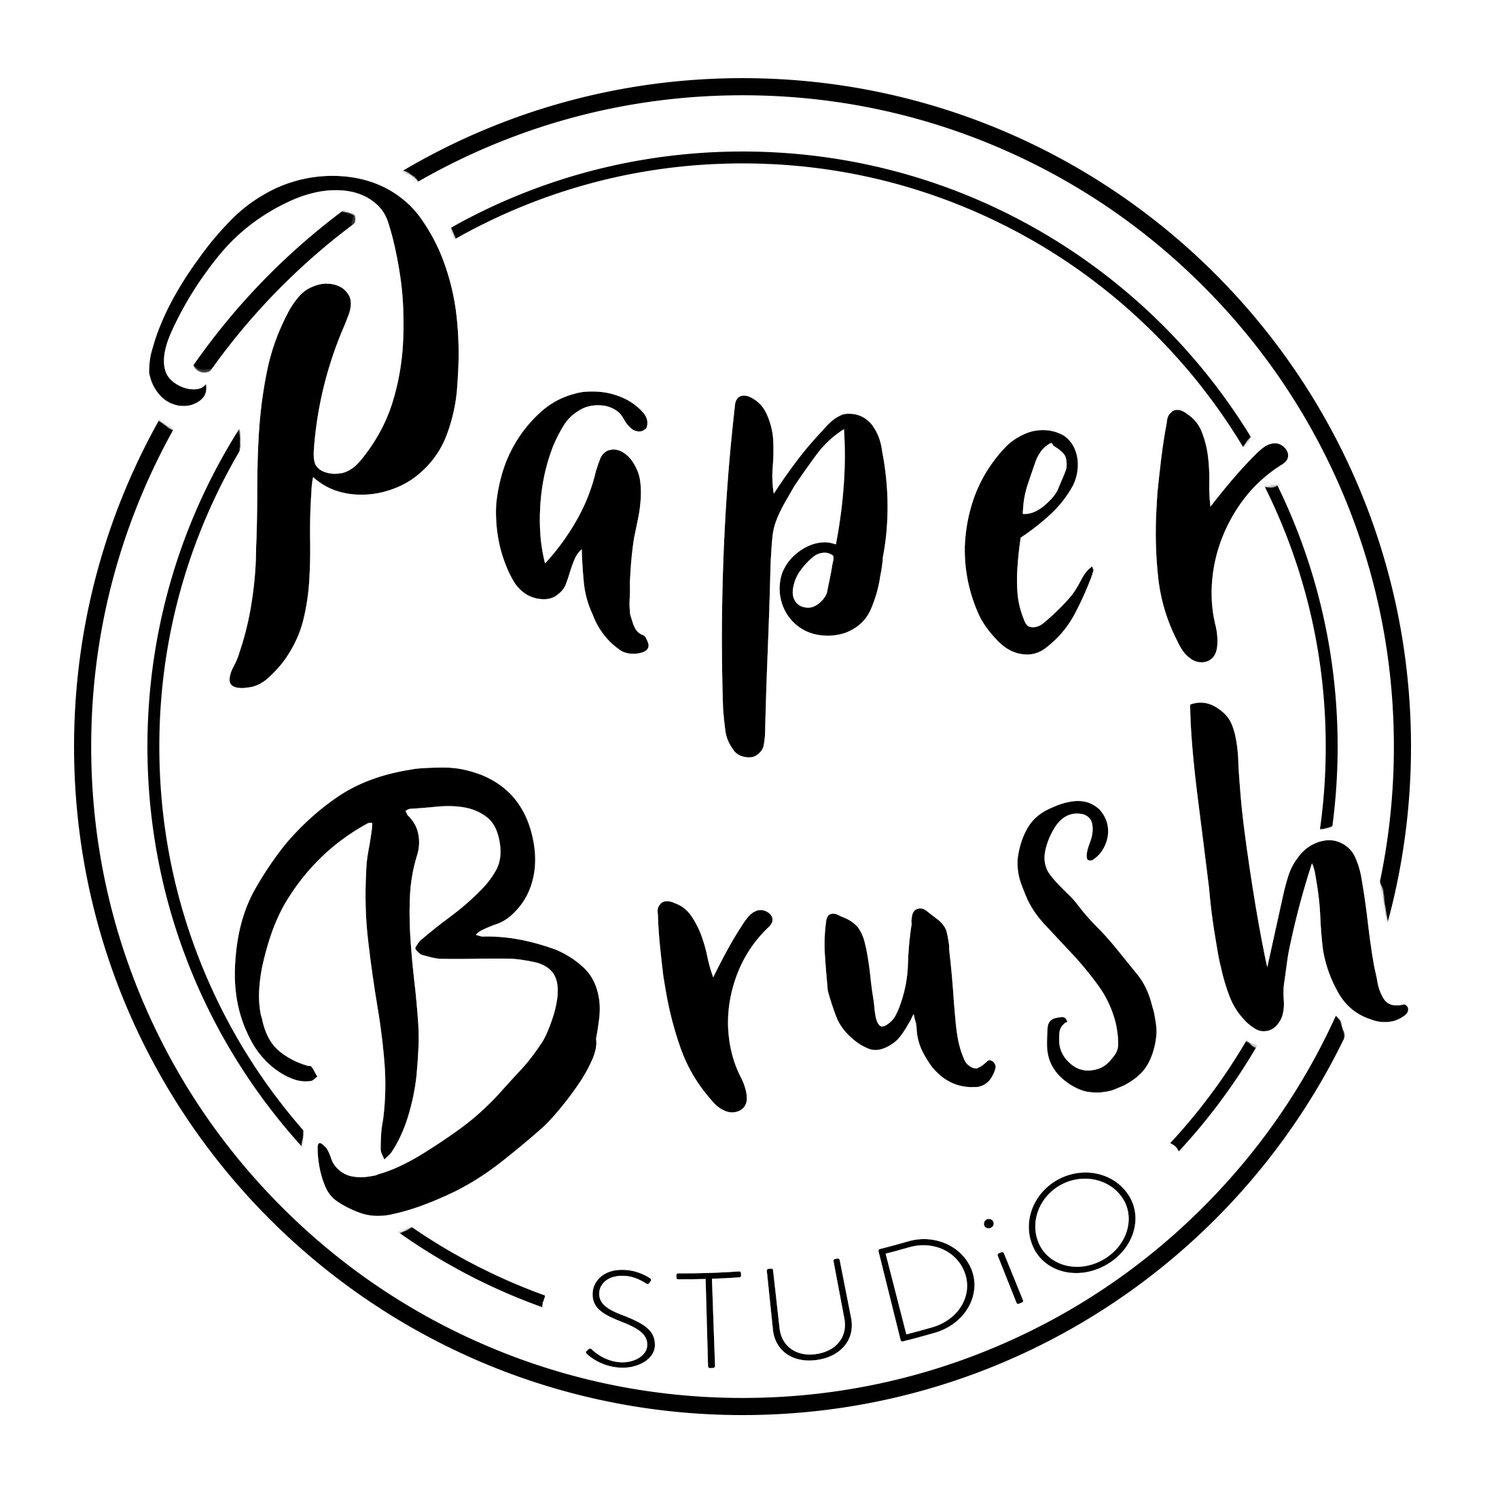 Paper Brush Studio